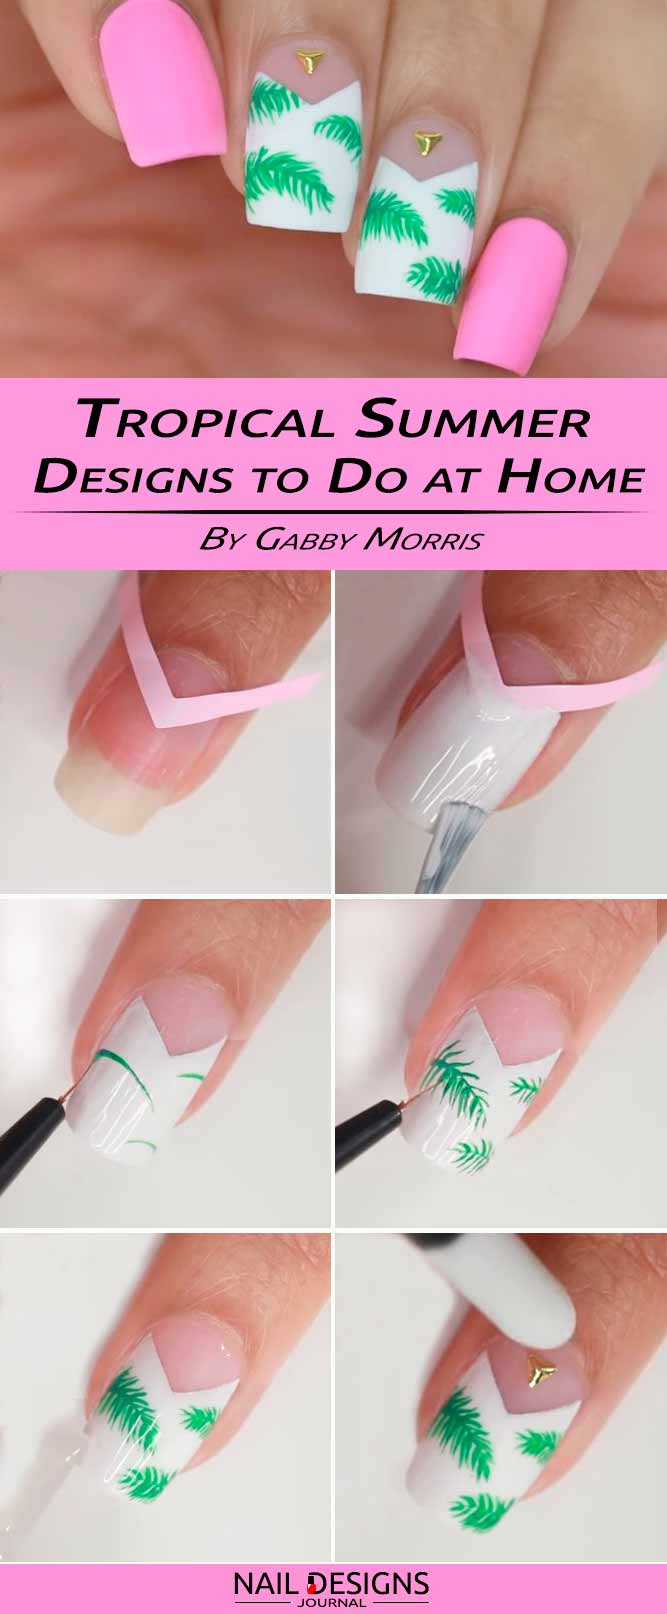 18 Ideas How To Do Nail Designs | NailDesignsJournal.com